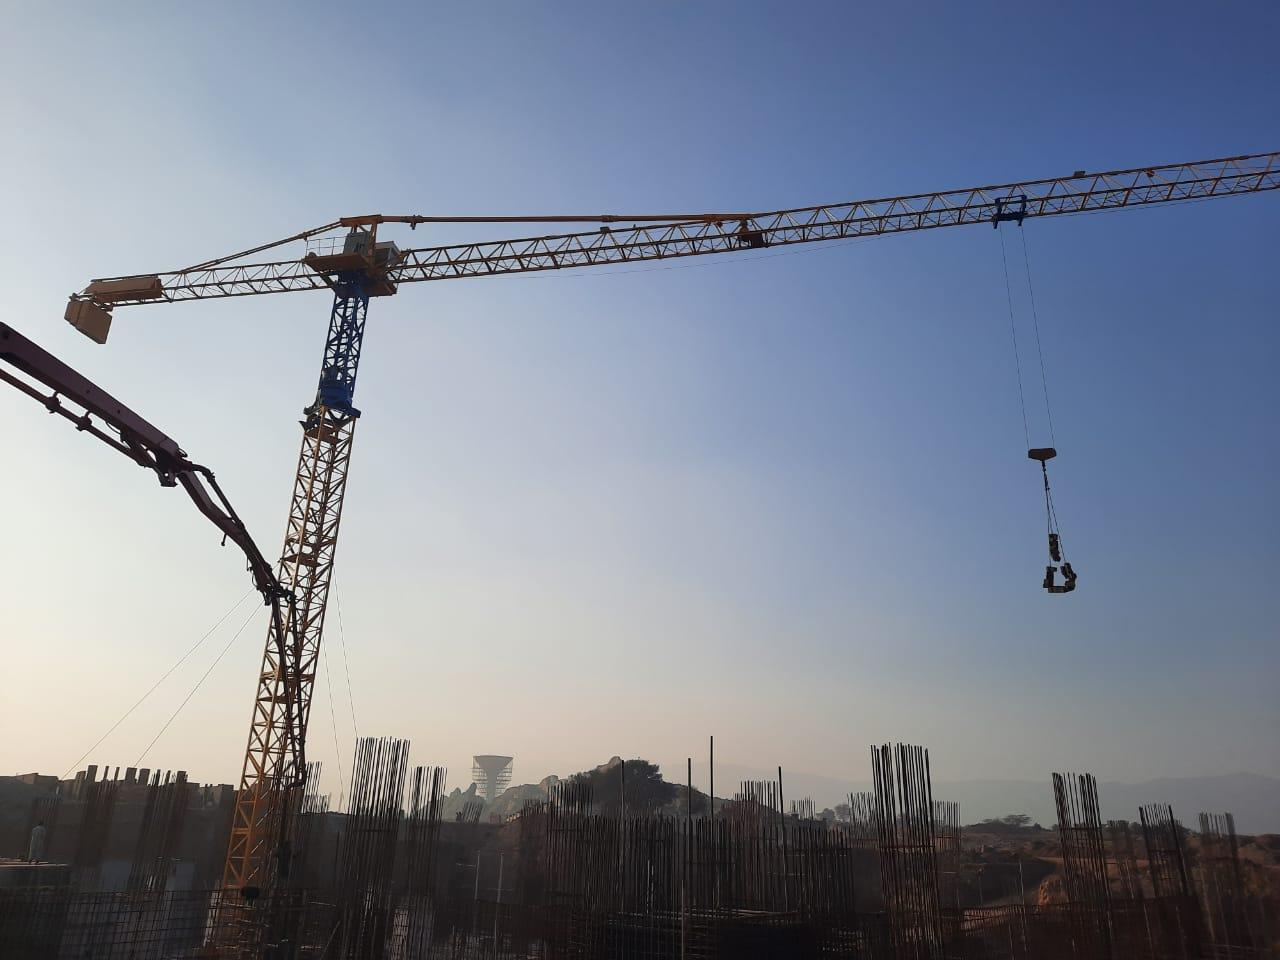 Tower crane installation at Harmony Hight completed.